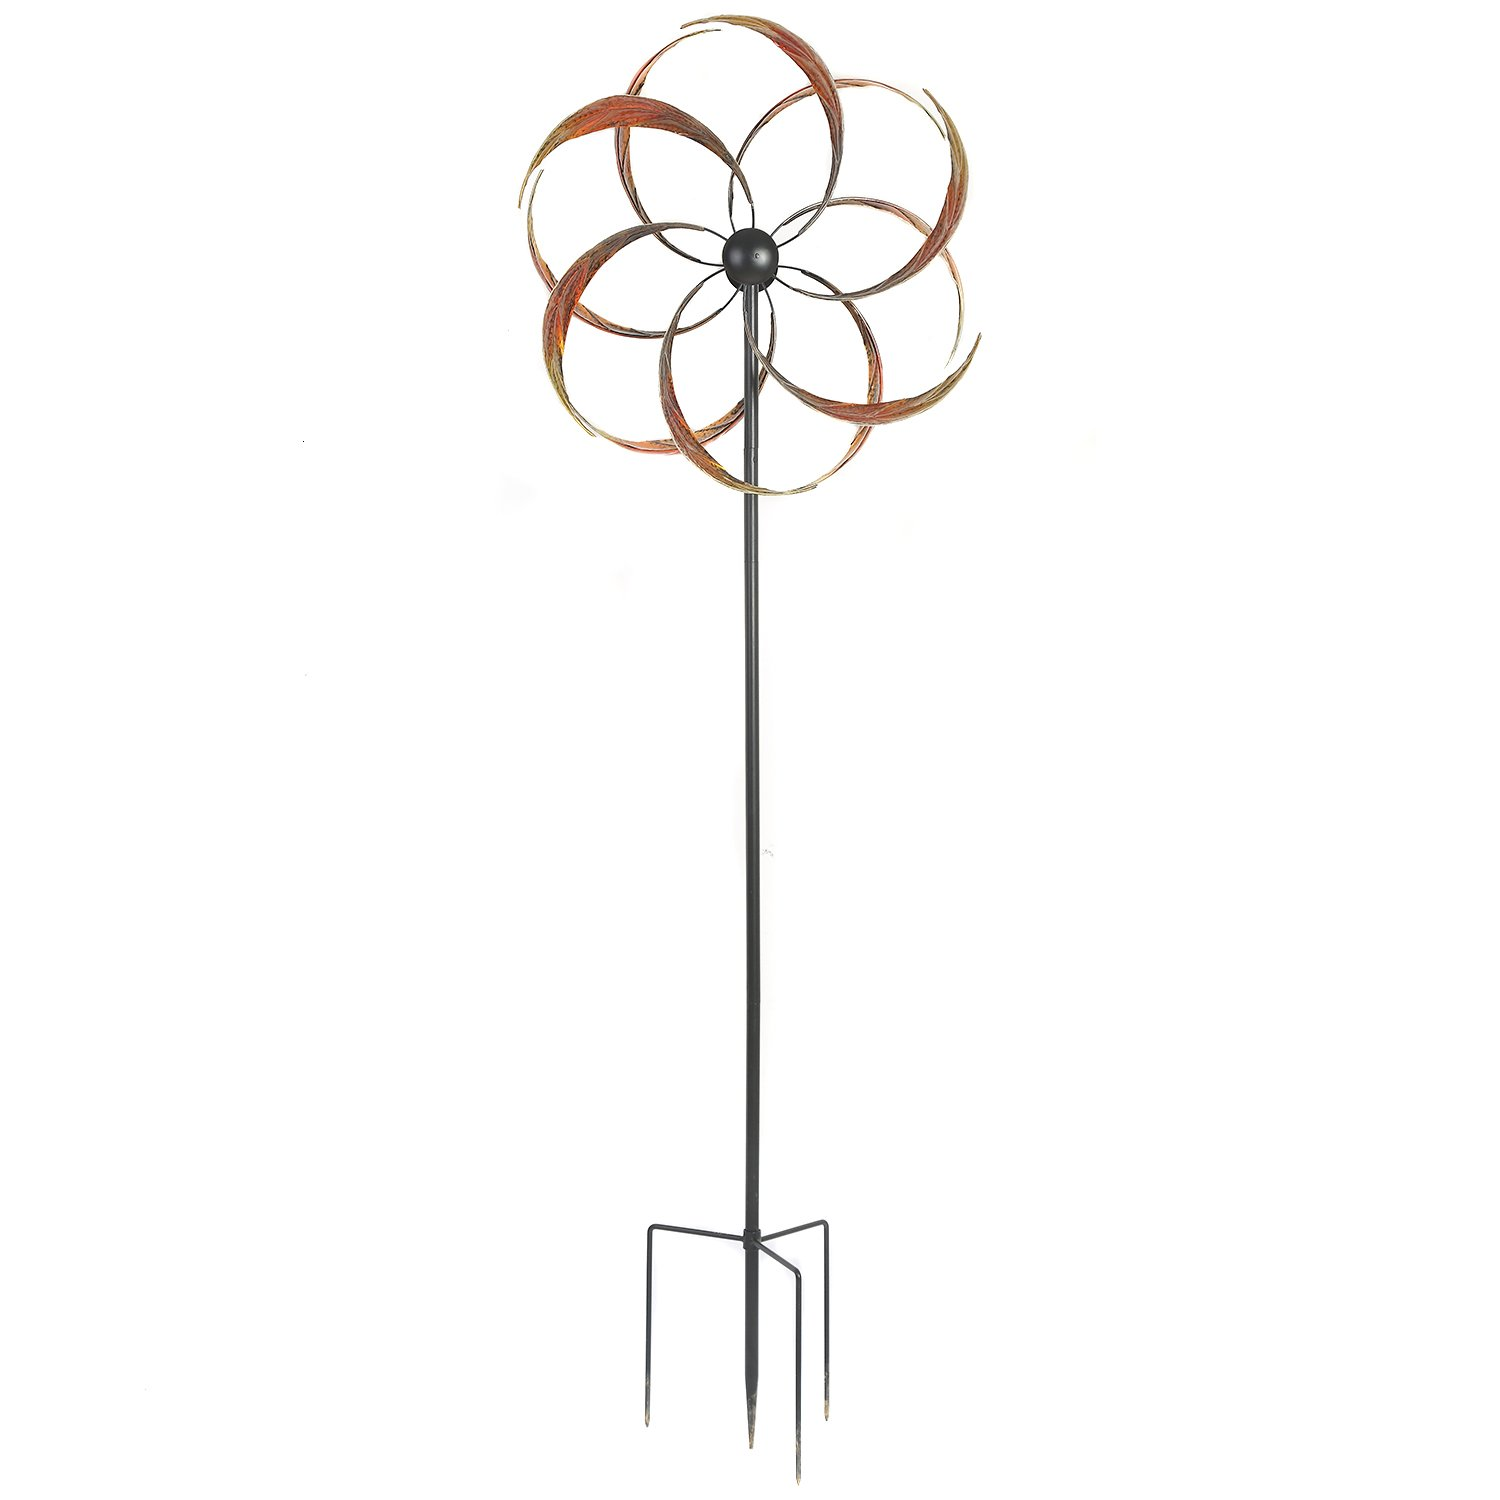 Wind Spinner Twirler Sculpture Garden Stake Outdoor Metal Stick Art Ornament Figurine Decor for Lawn Yard Patio by CEDAR HOME, 23''W x 10.25''D x 75''H